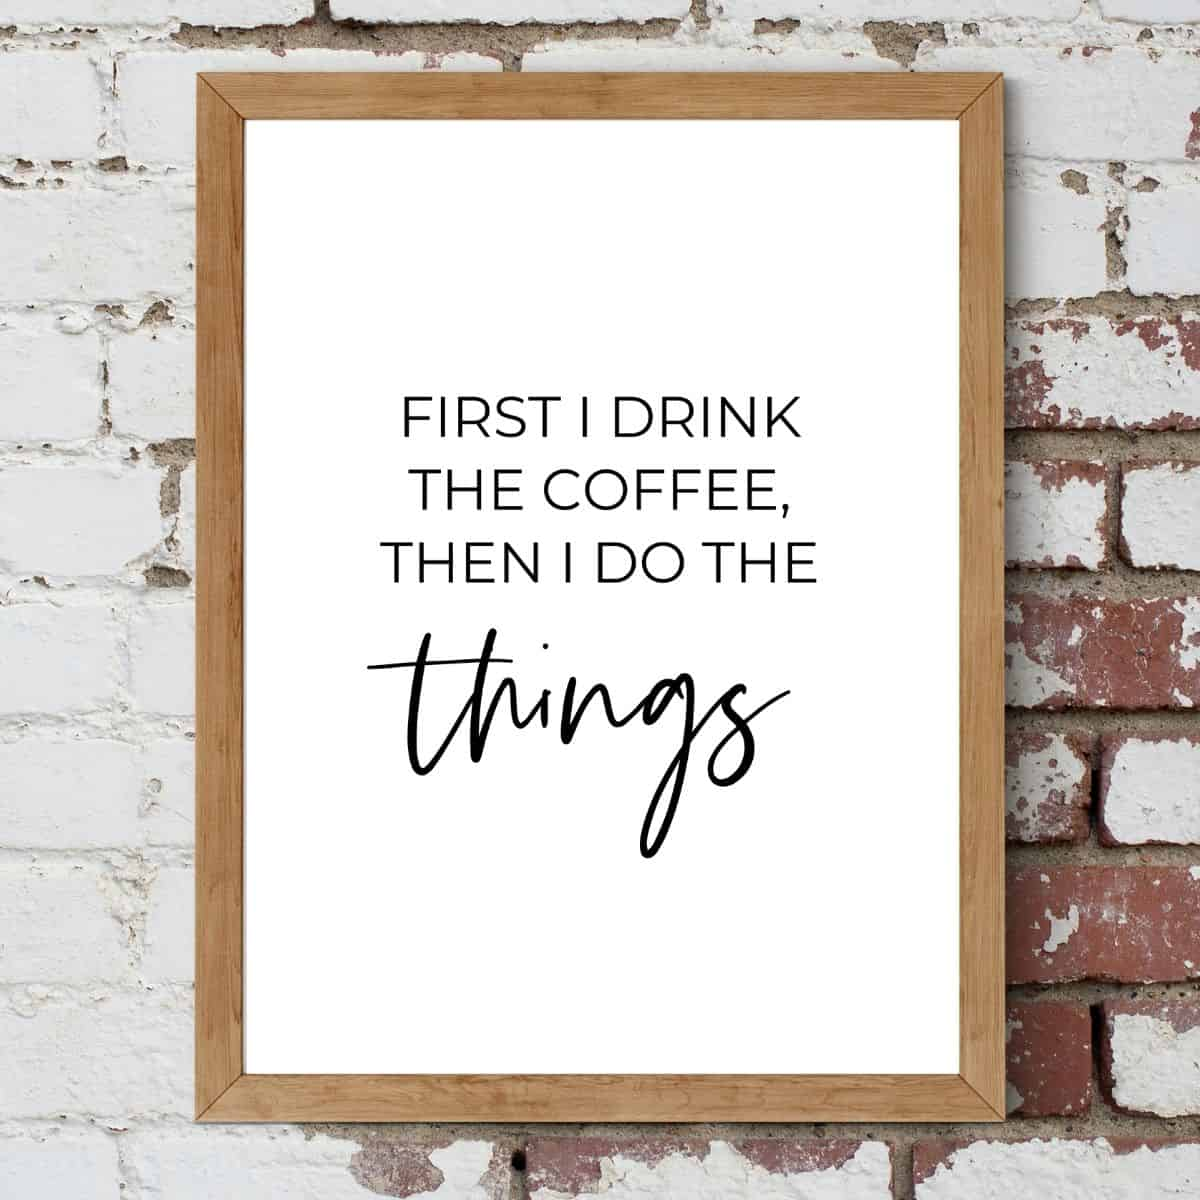 Brown frame on the brick wall with the text: First I drink the coffee, then I do the things